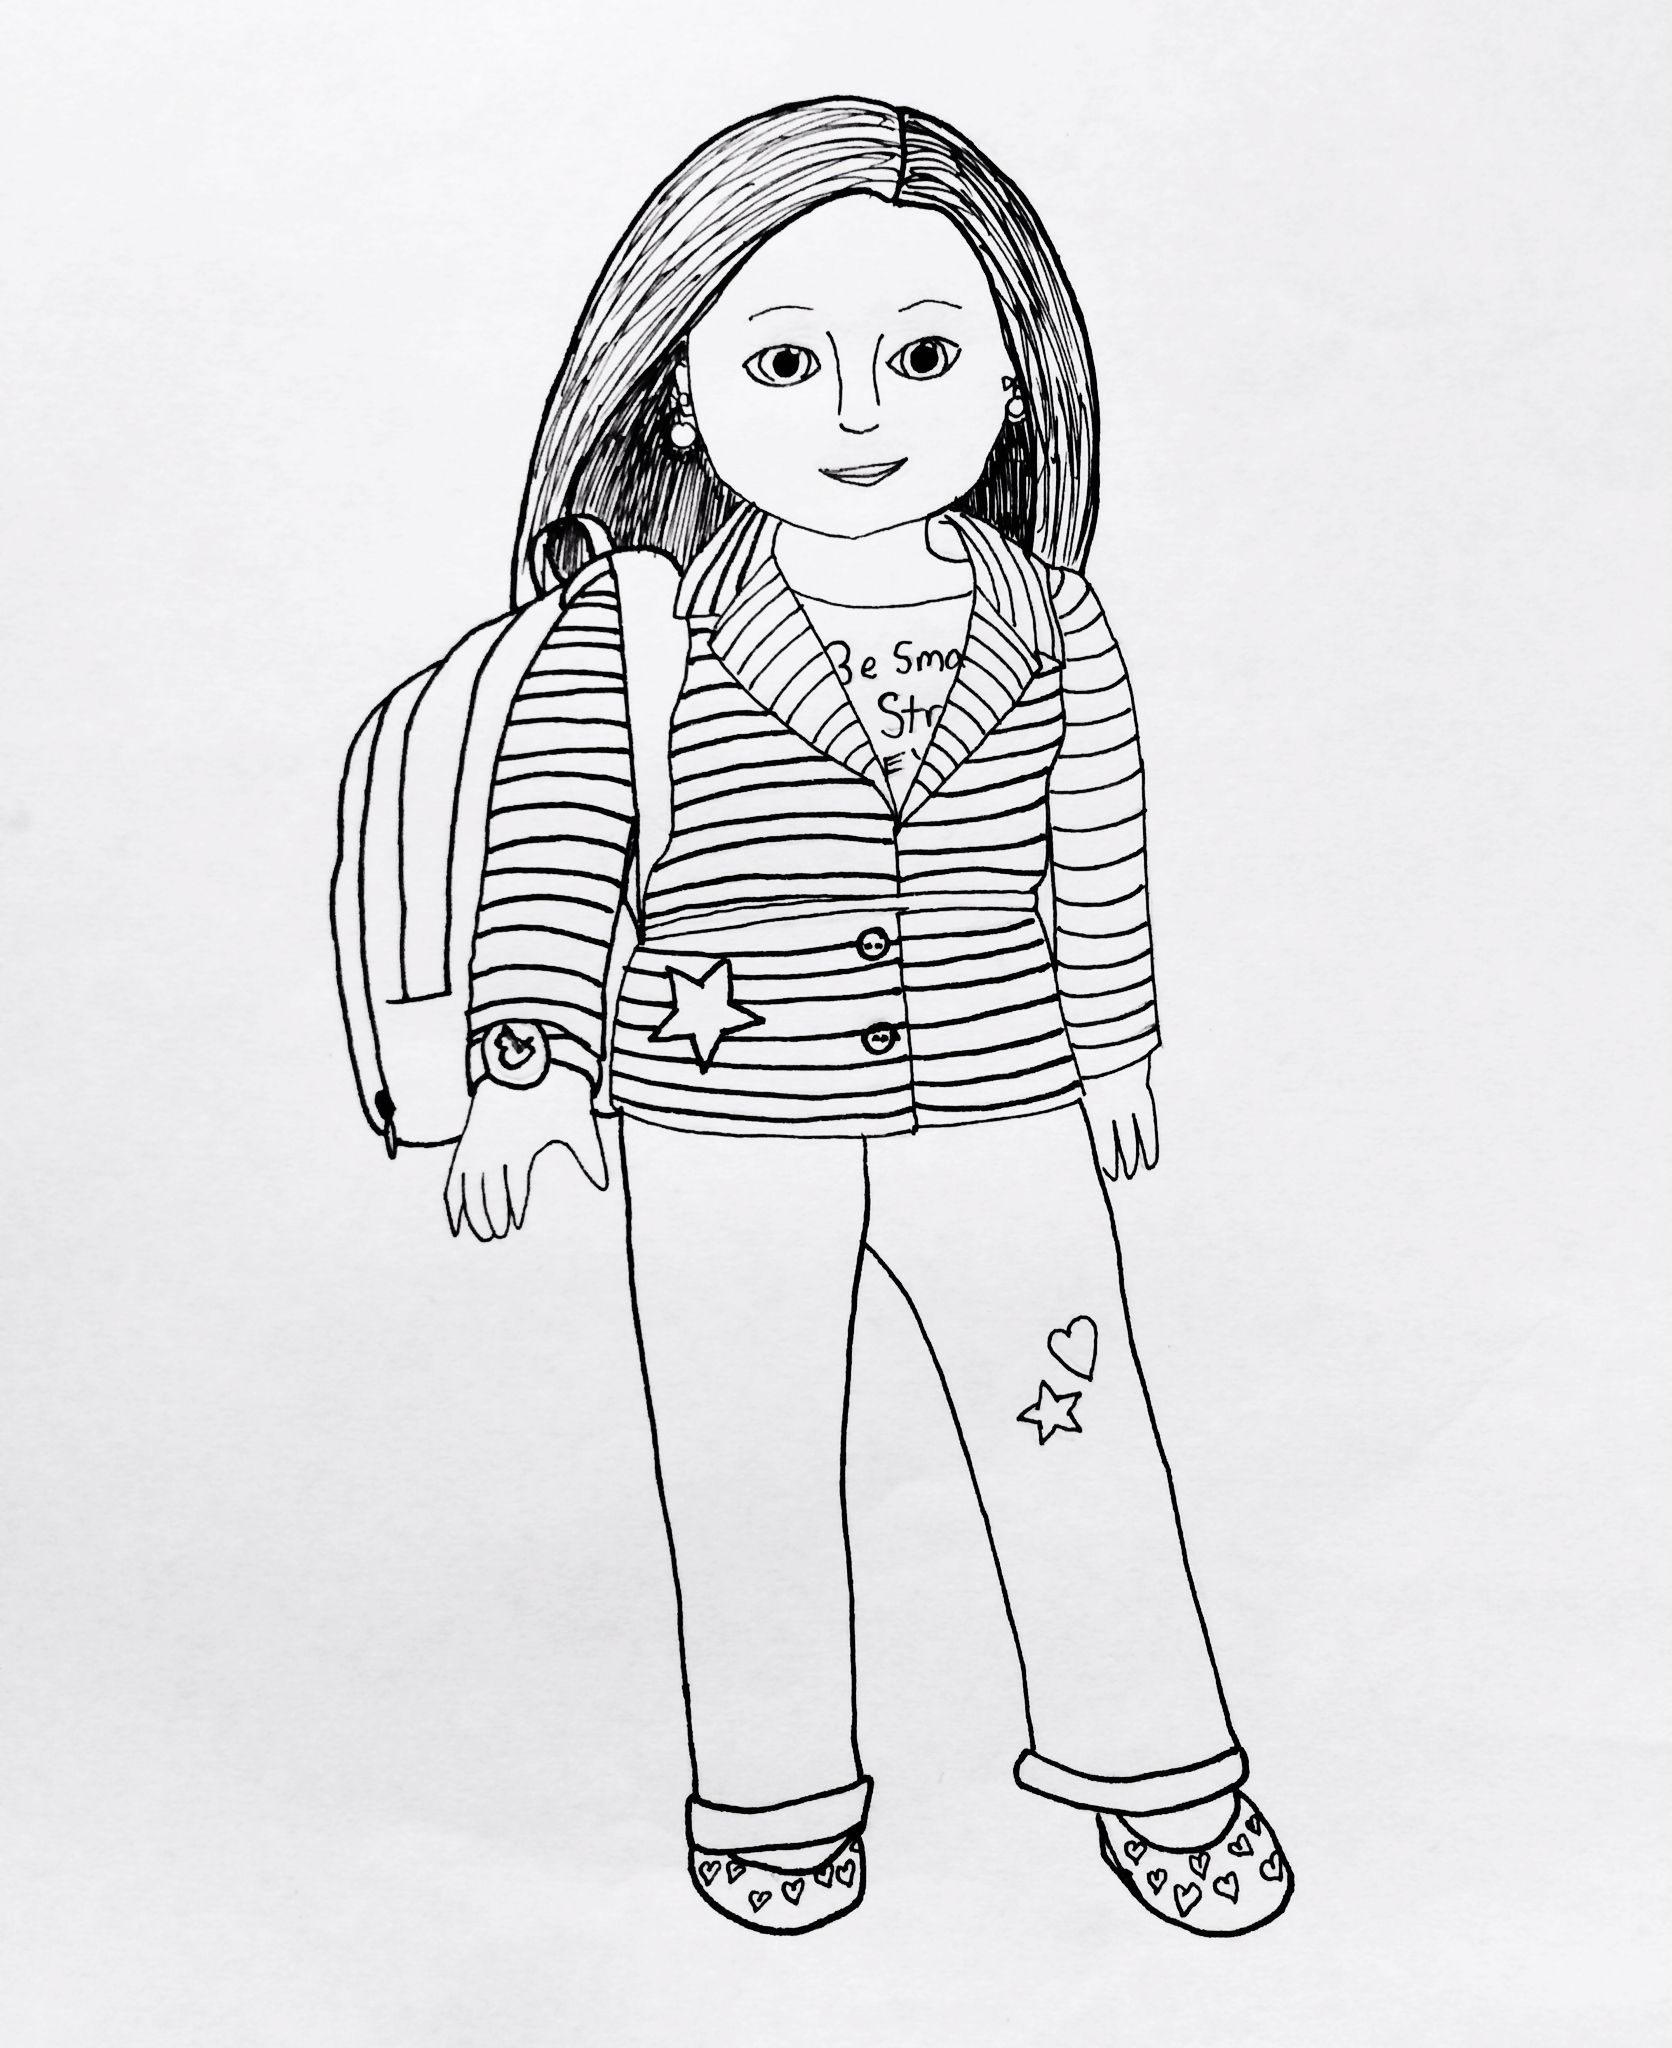 American Girl Dolls Coloring Pages  Gallery 3t - Free For kids